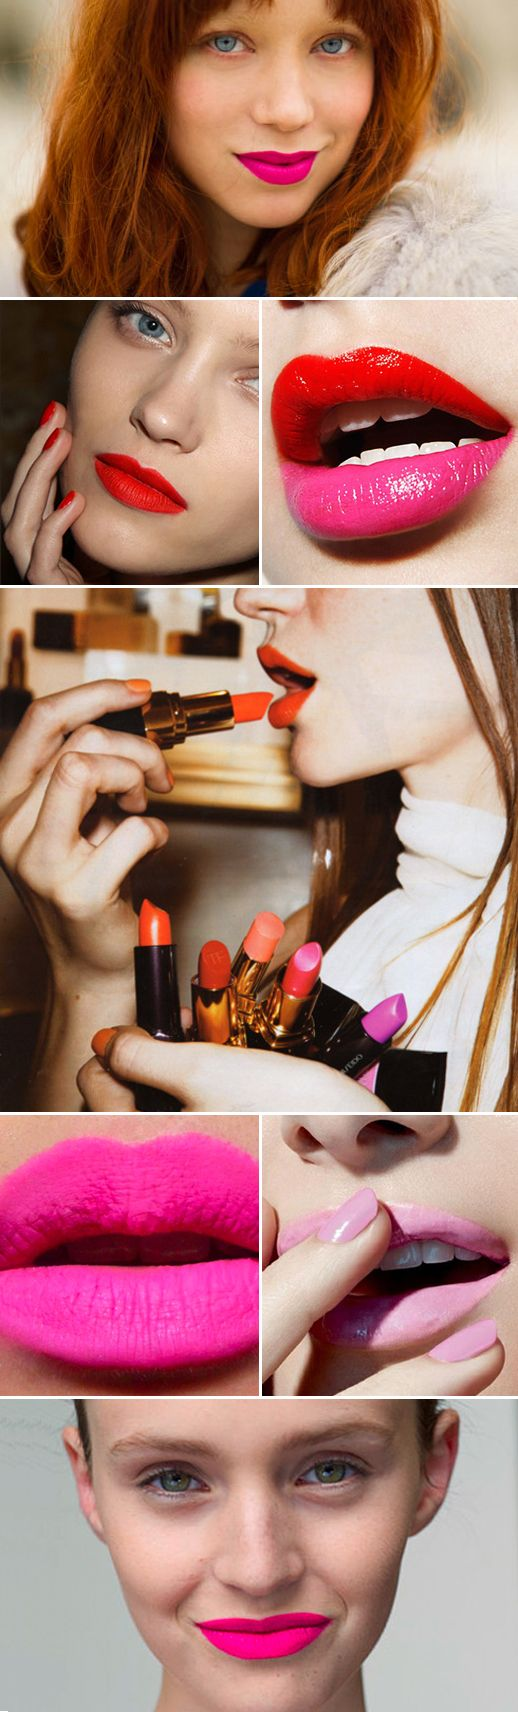 25+ Best Ideas about Bright Lipstick on Pinterest | Bright ...